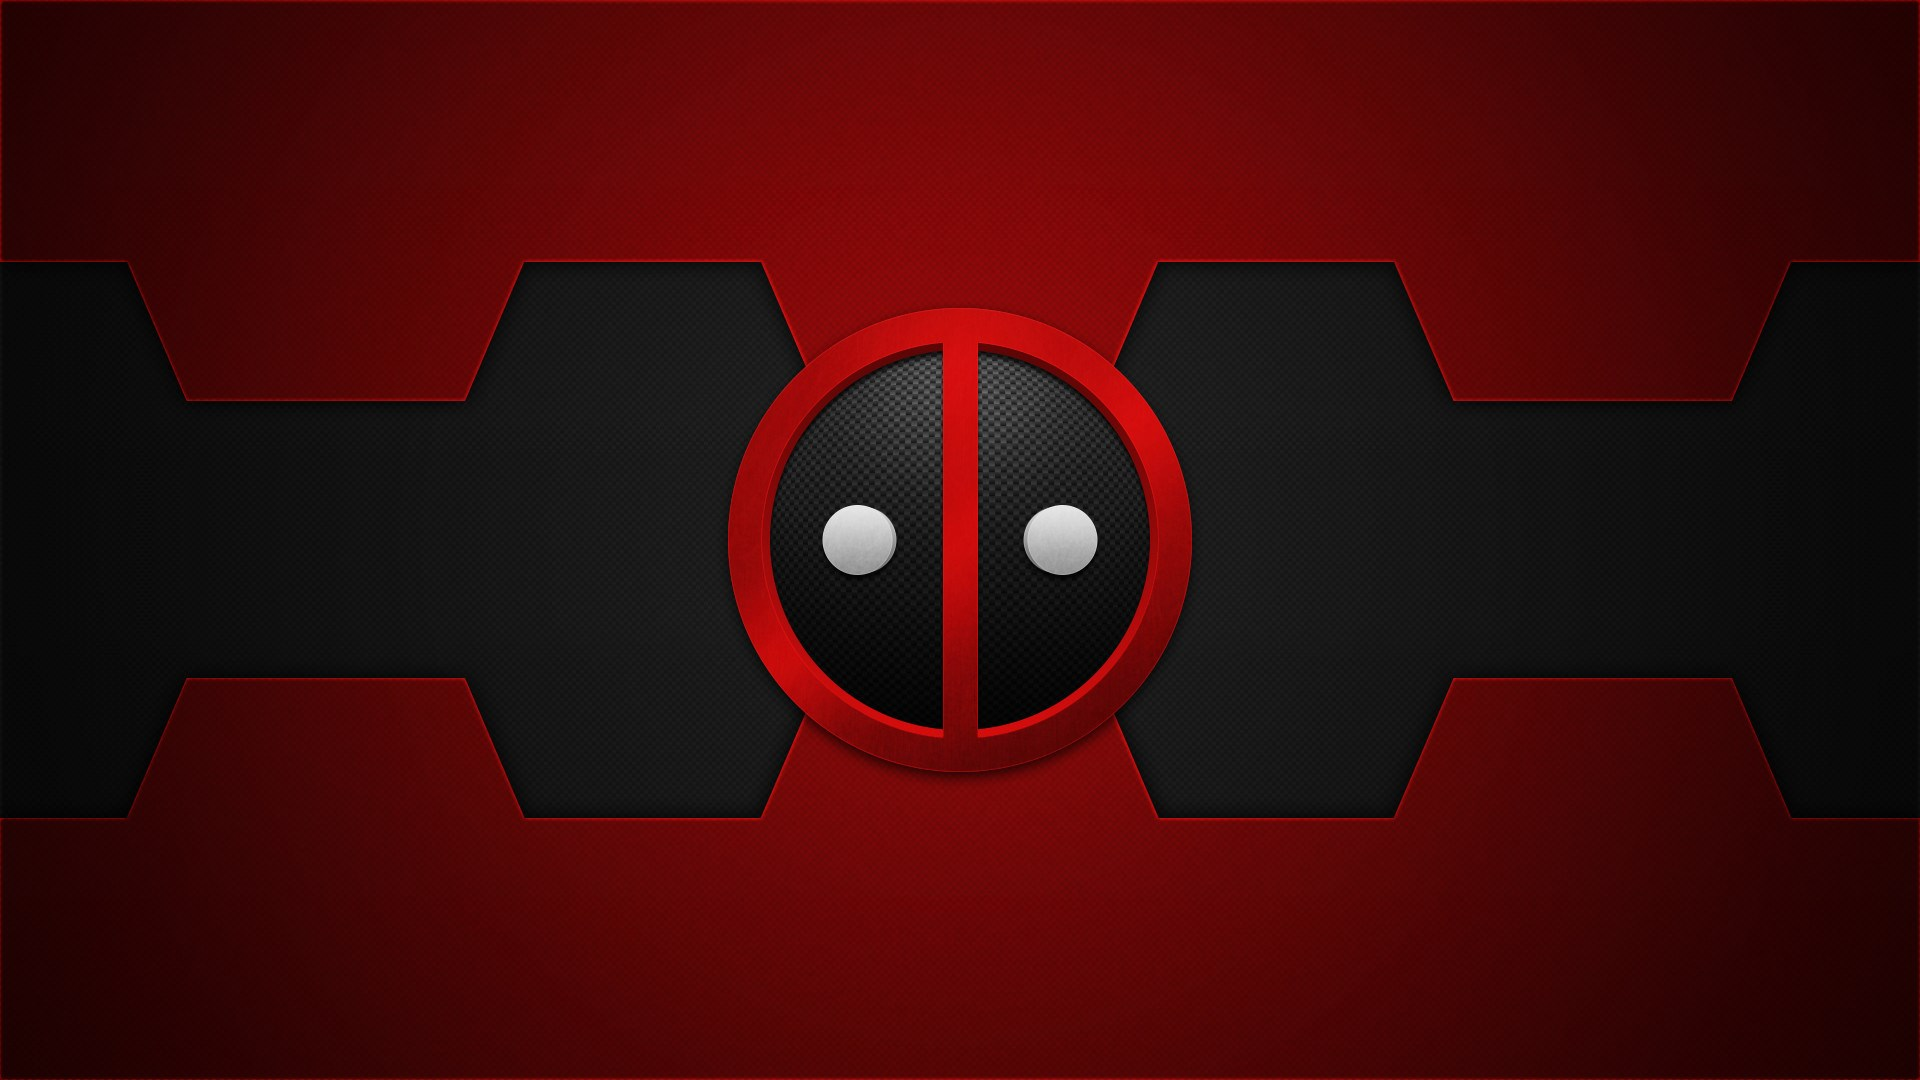 Cool-deadpool-pic-Clint-Nail-1920x1080-wallpaper-wp3604289